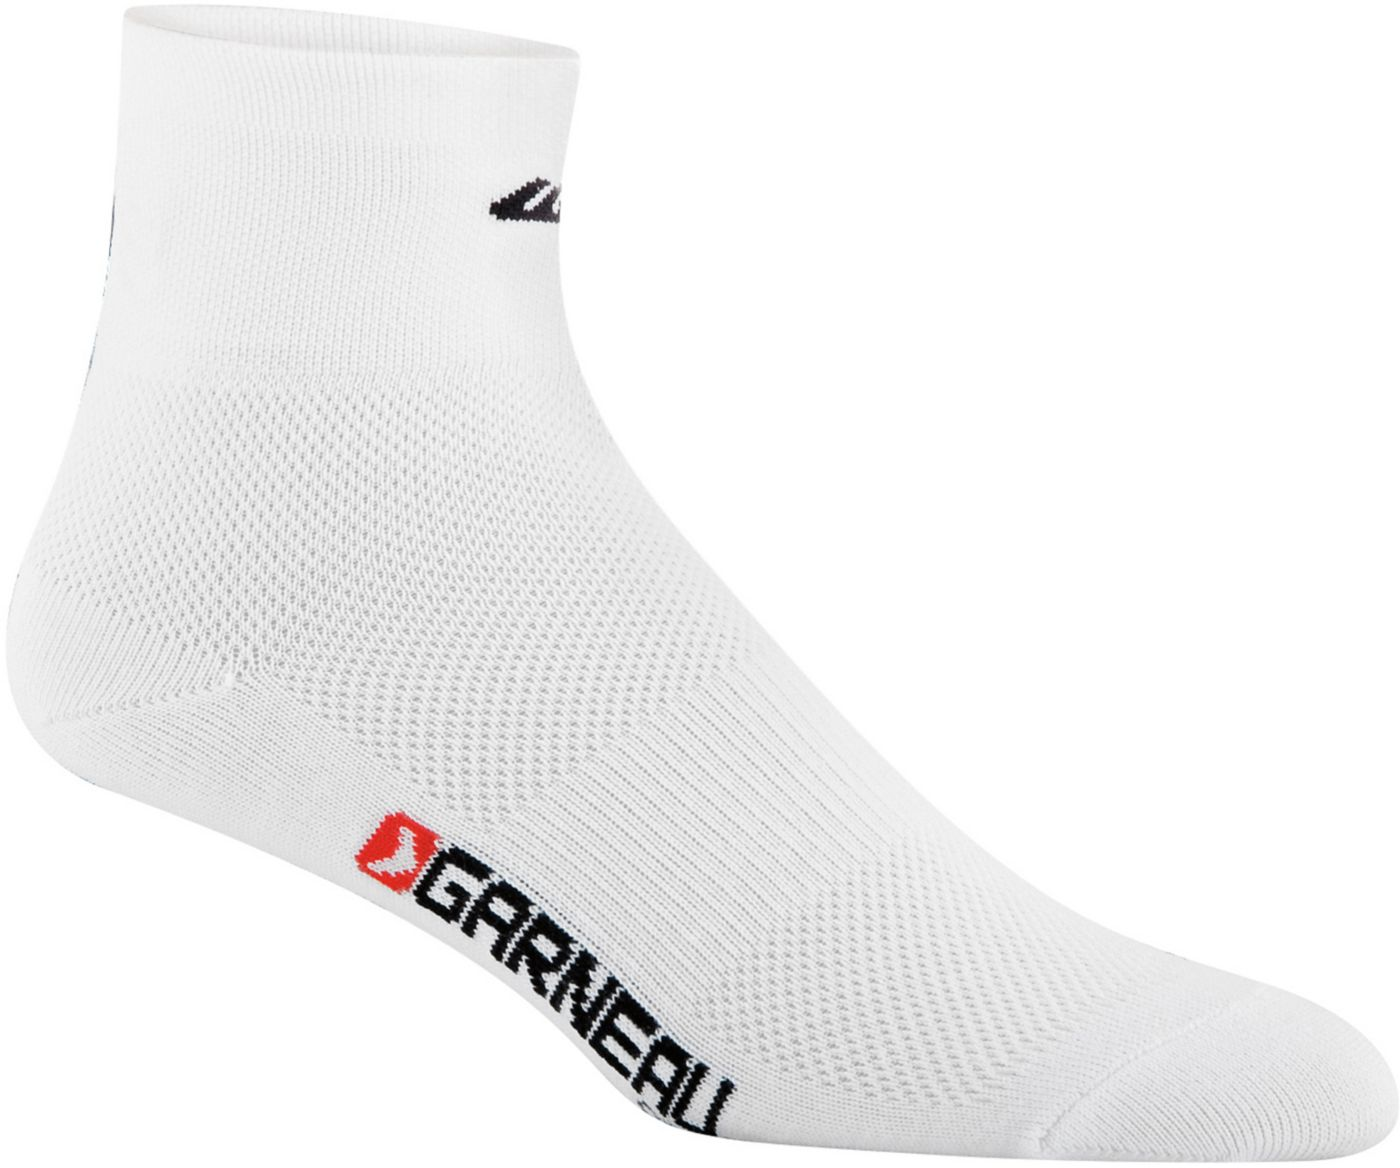 Louis Garneau Adult Mid Versis Cycling Socks 3 Pack